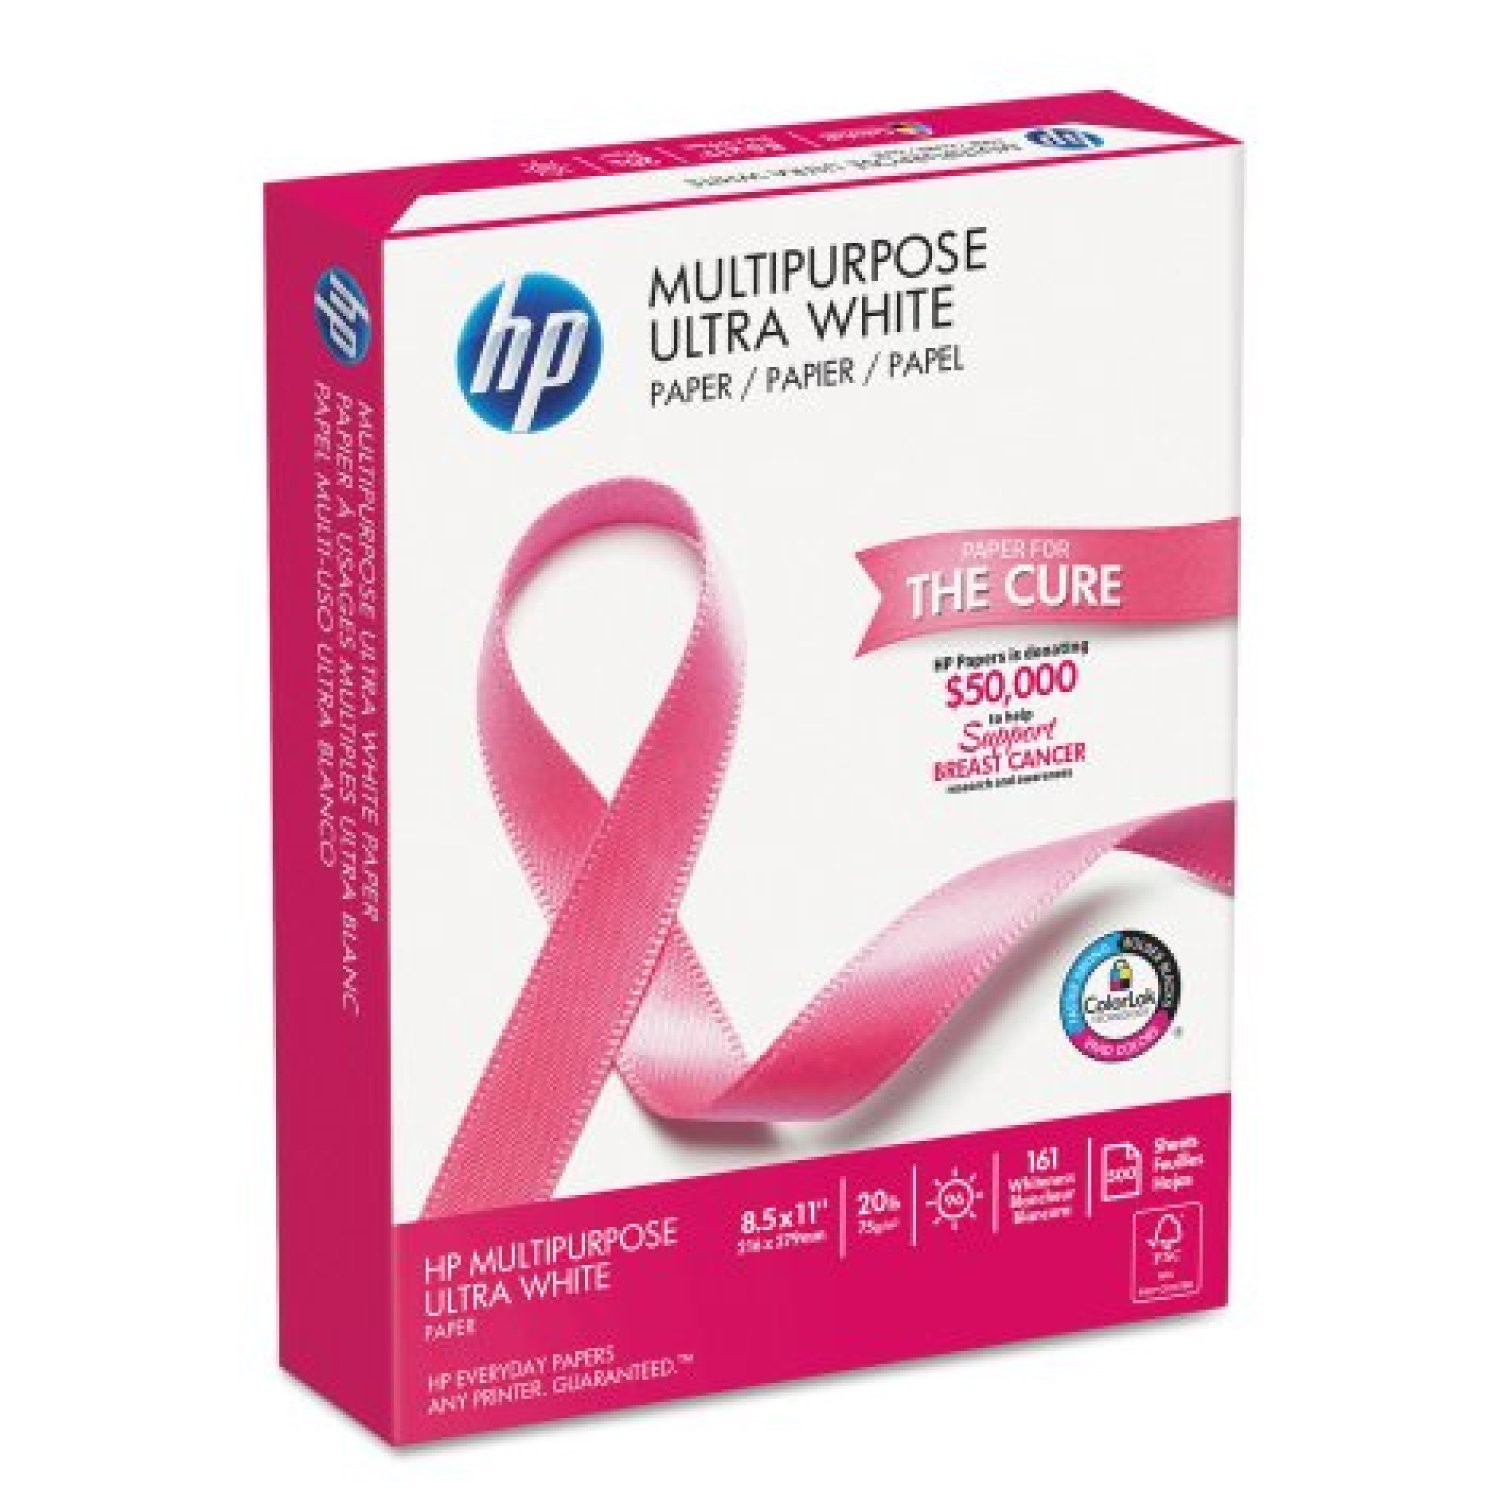 HP Multipurpose Paper, 8 1/2 x 11, 20 lb., 96 Bright, 500 sheets/ream, (112000) 8 1/2 x 11 Hewlett-Packard